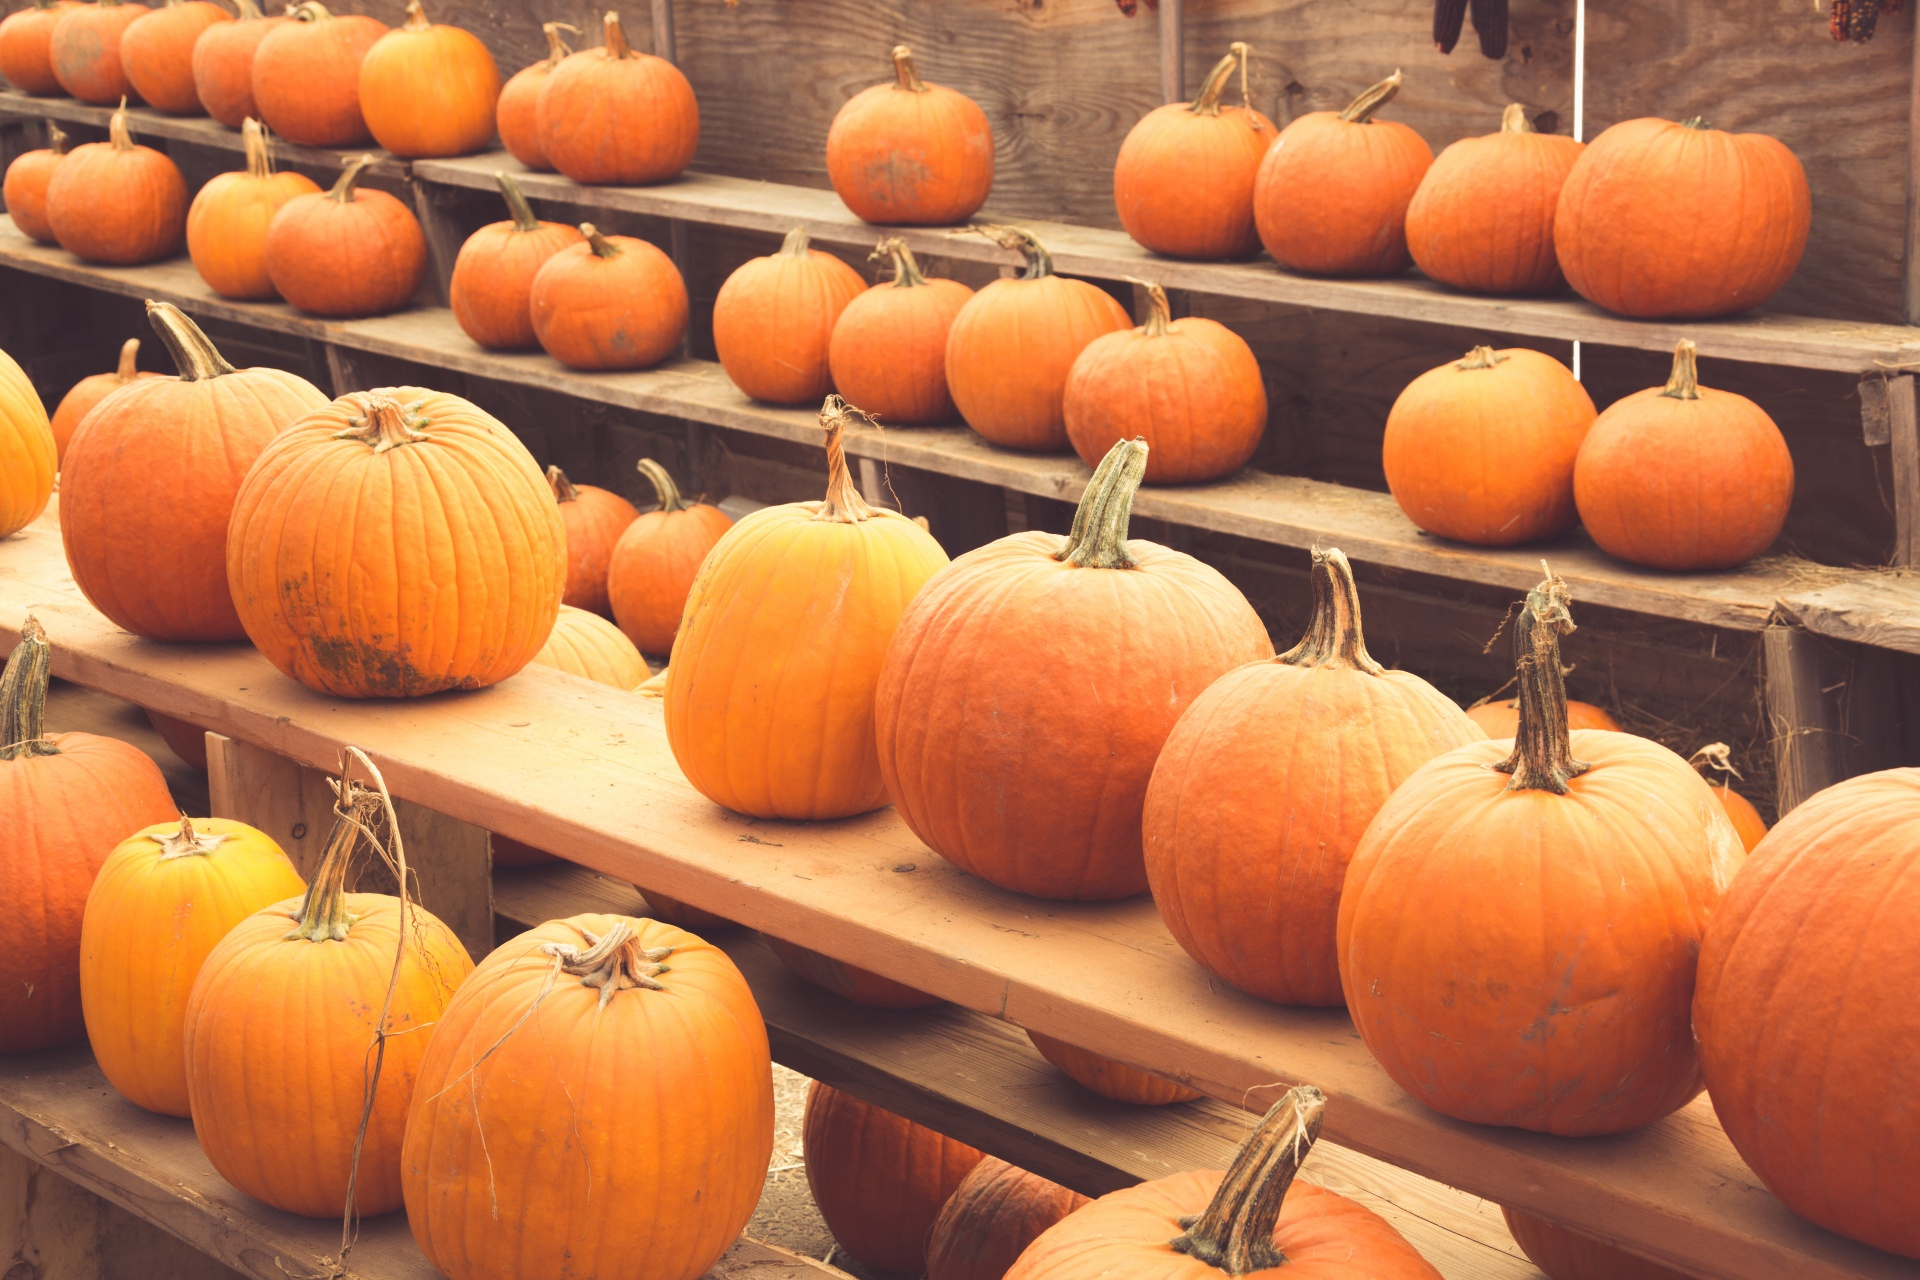 Pumpkins on wooden shelves arranged in rows